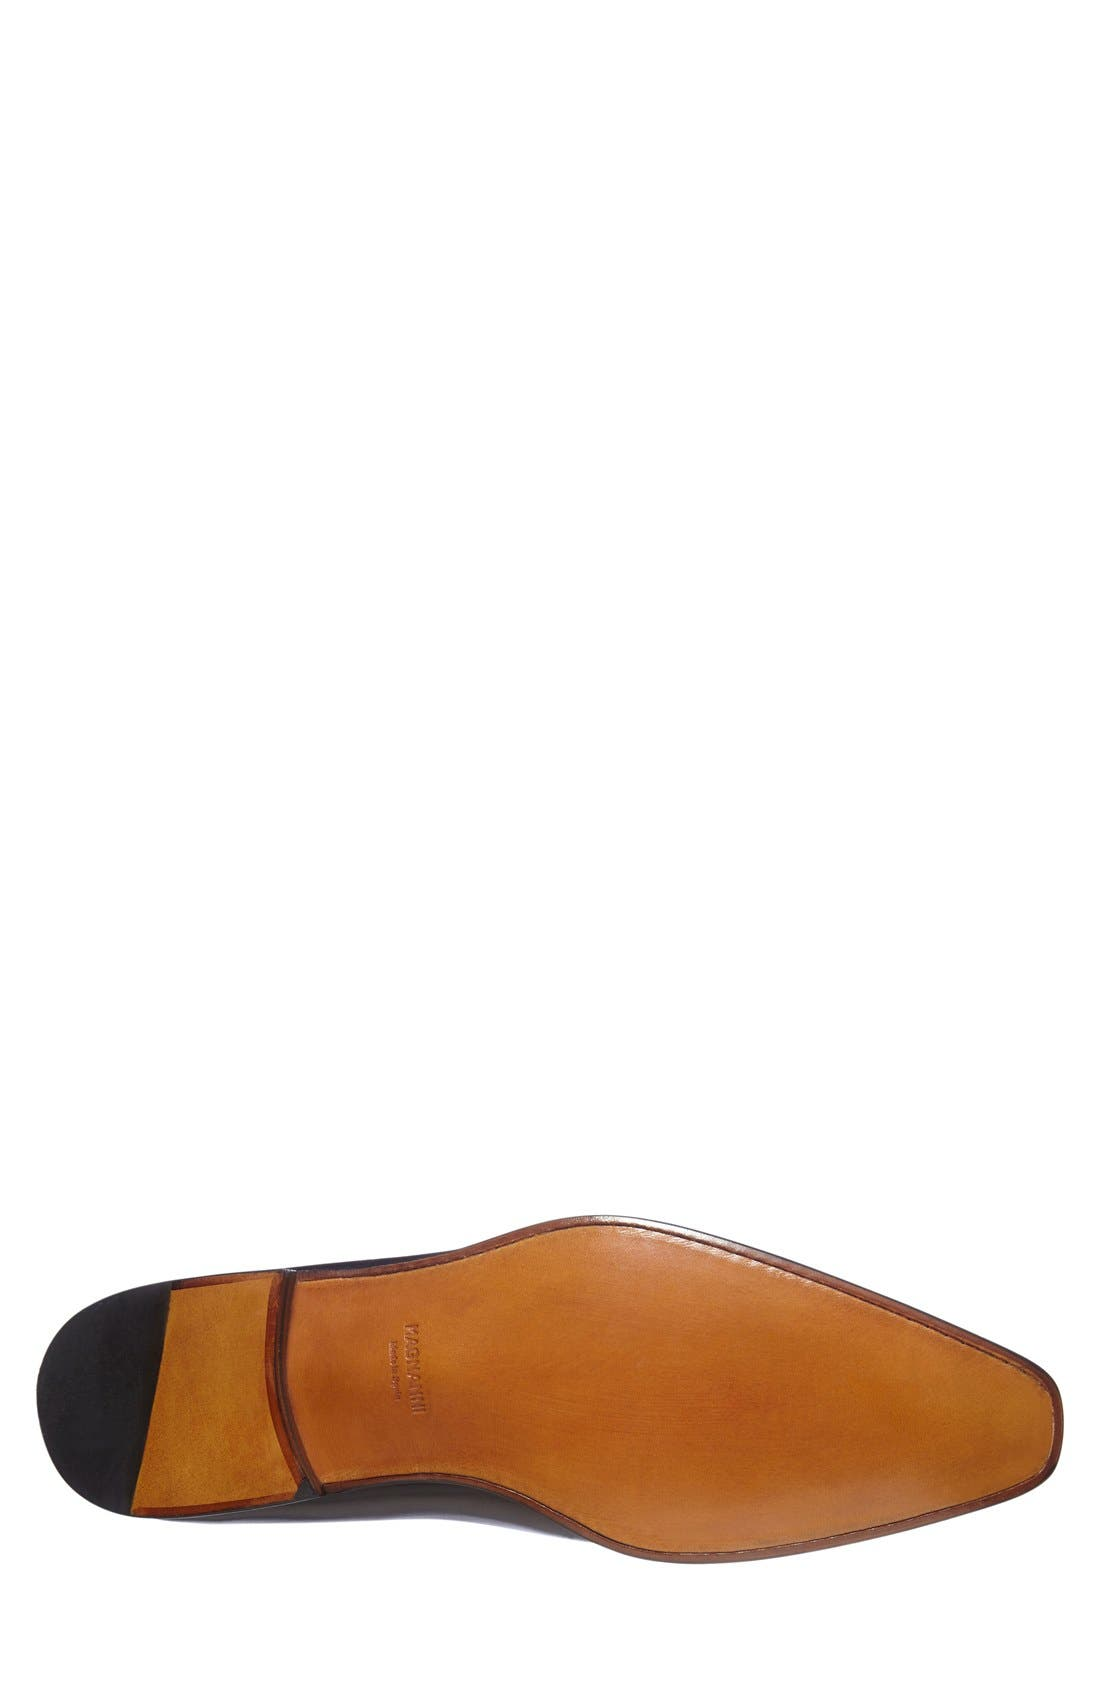 Alternate Image 4  - Magnanni 'Cruz' Plain Toe Oxford (Men)